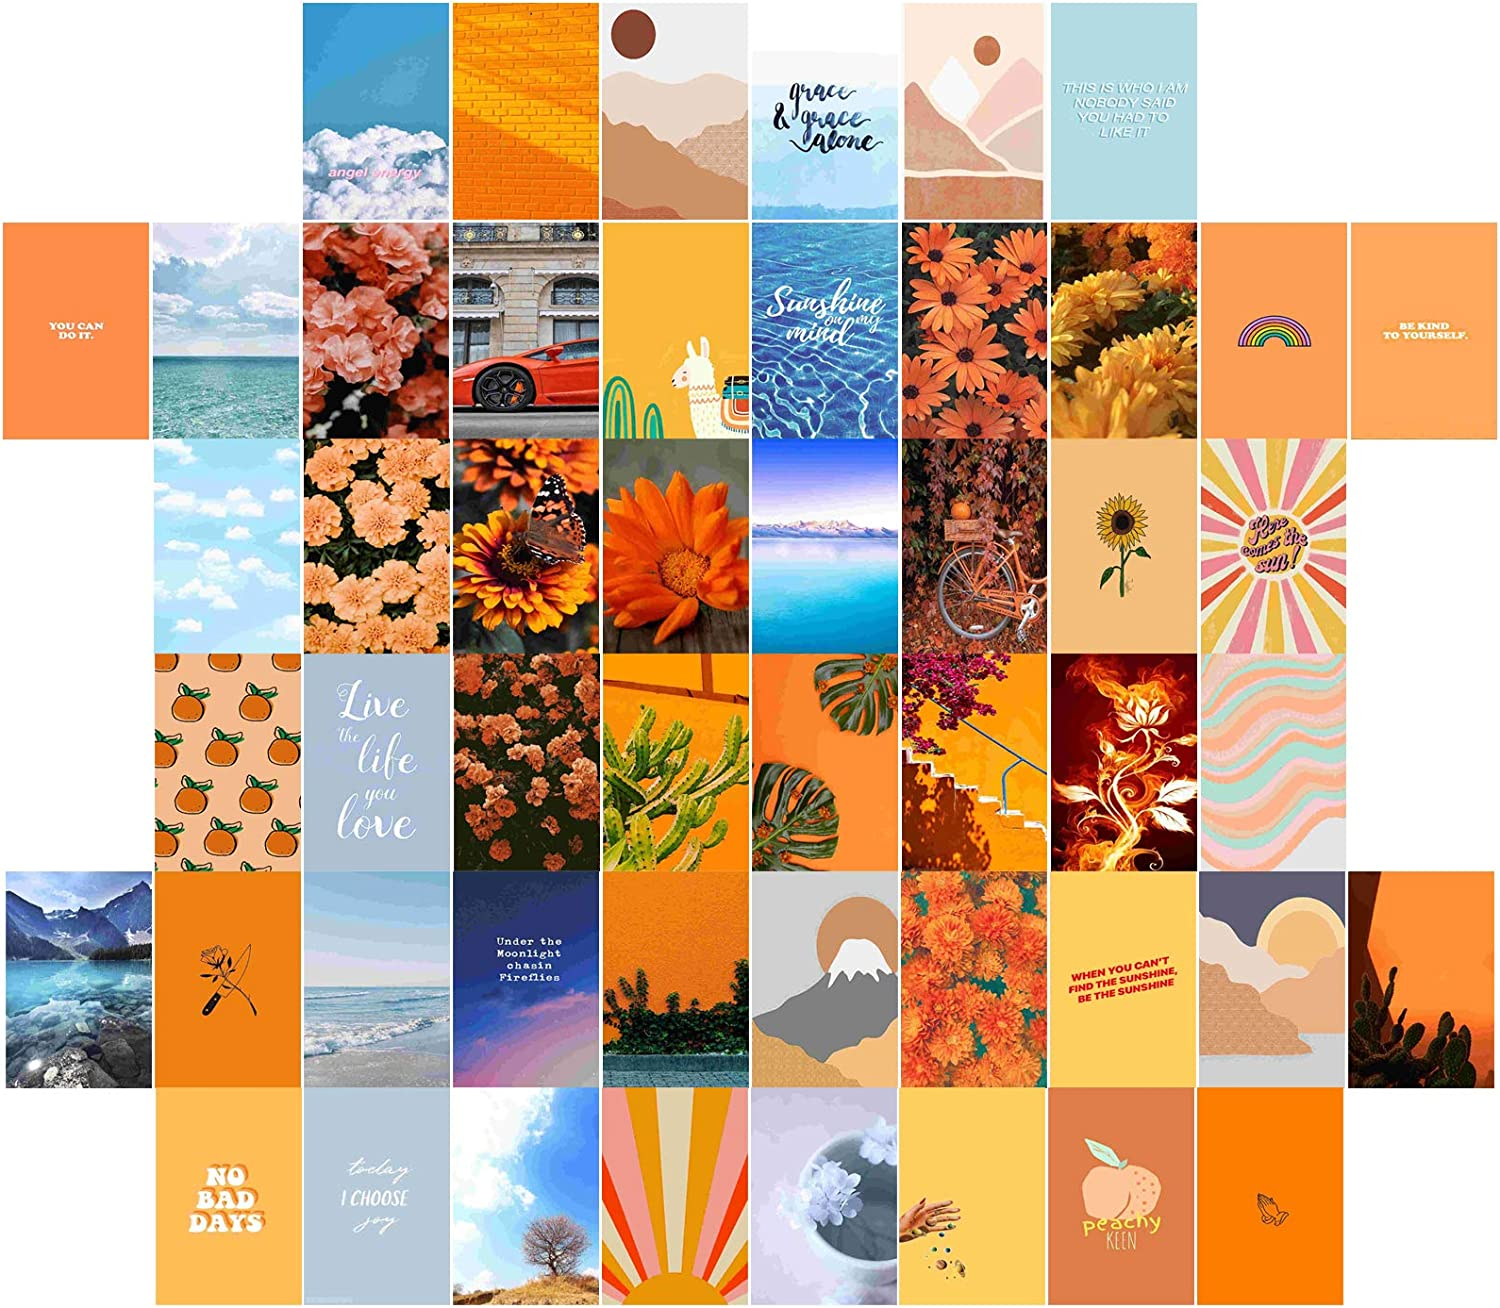 PONPANI 50 Pieces Room Decor for Bedroom Decor, Wall Decor Posters Collage Kit Retro Style Photo Collection for Teens and Young Adults, Peach Teal Boho Wall Art Aesthetic, 4x6inch Photo